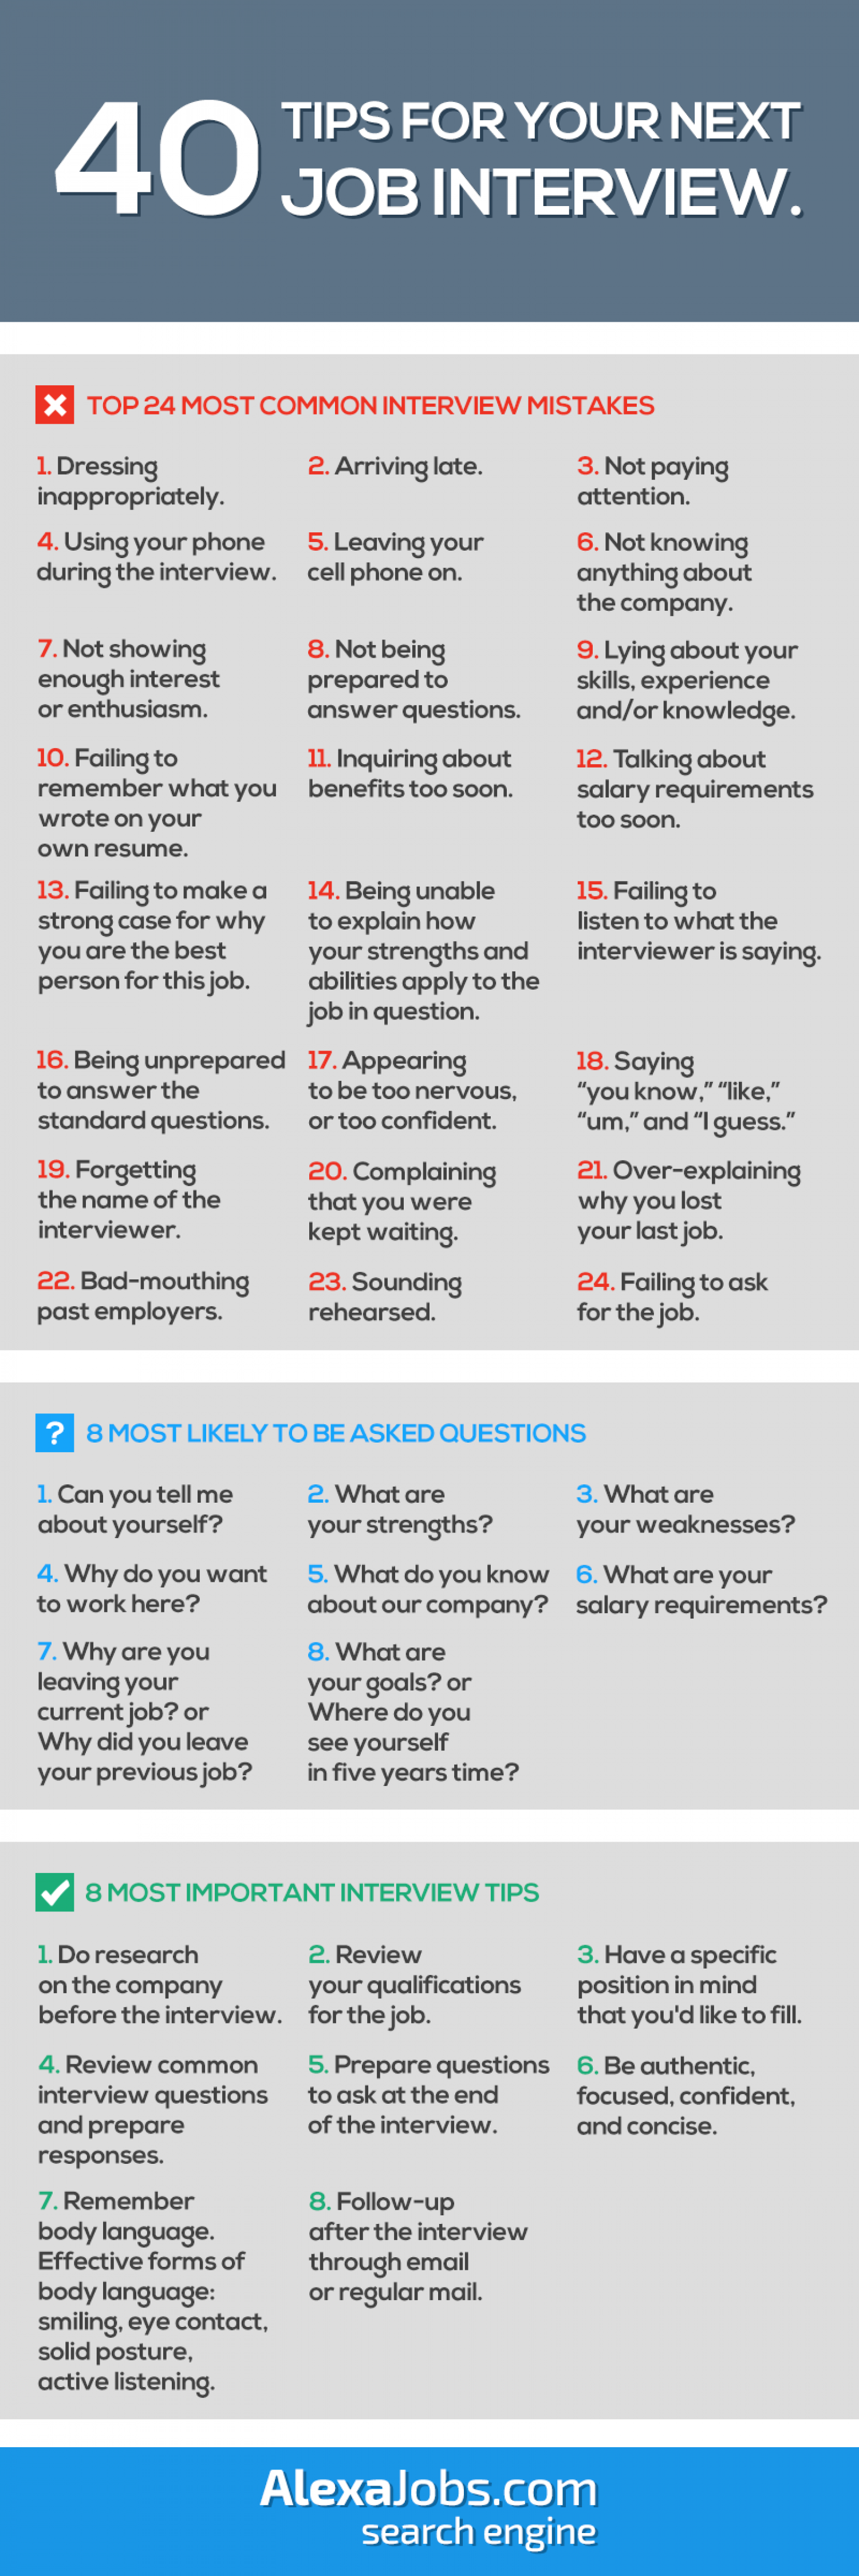 40 tips for your next job interview visual ly 40 tips for your next job interview infographic